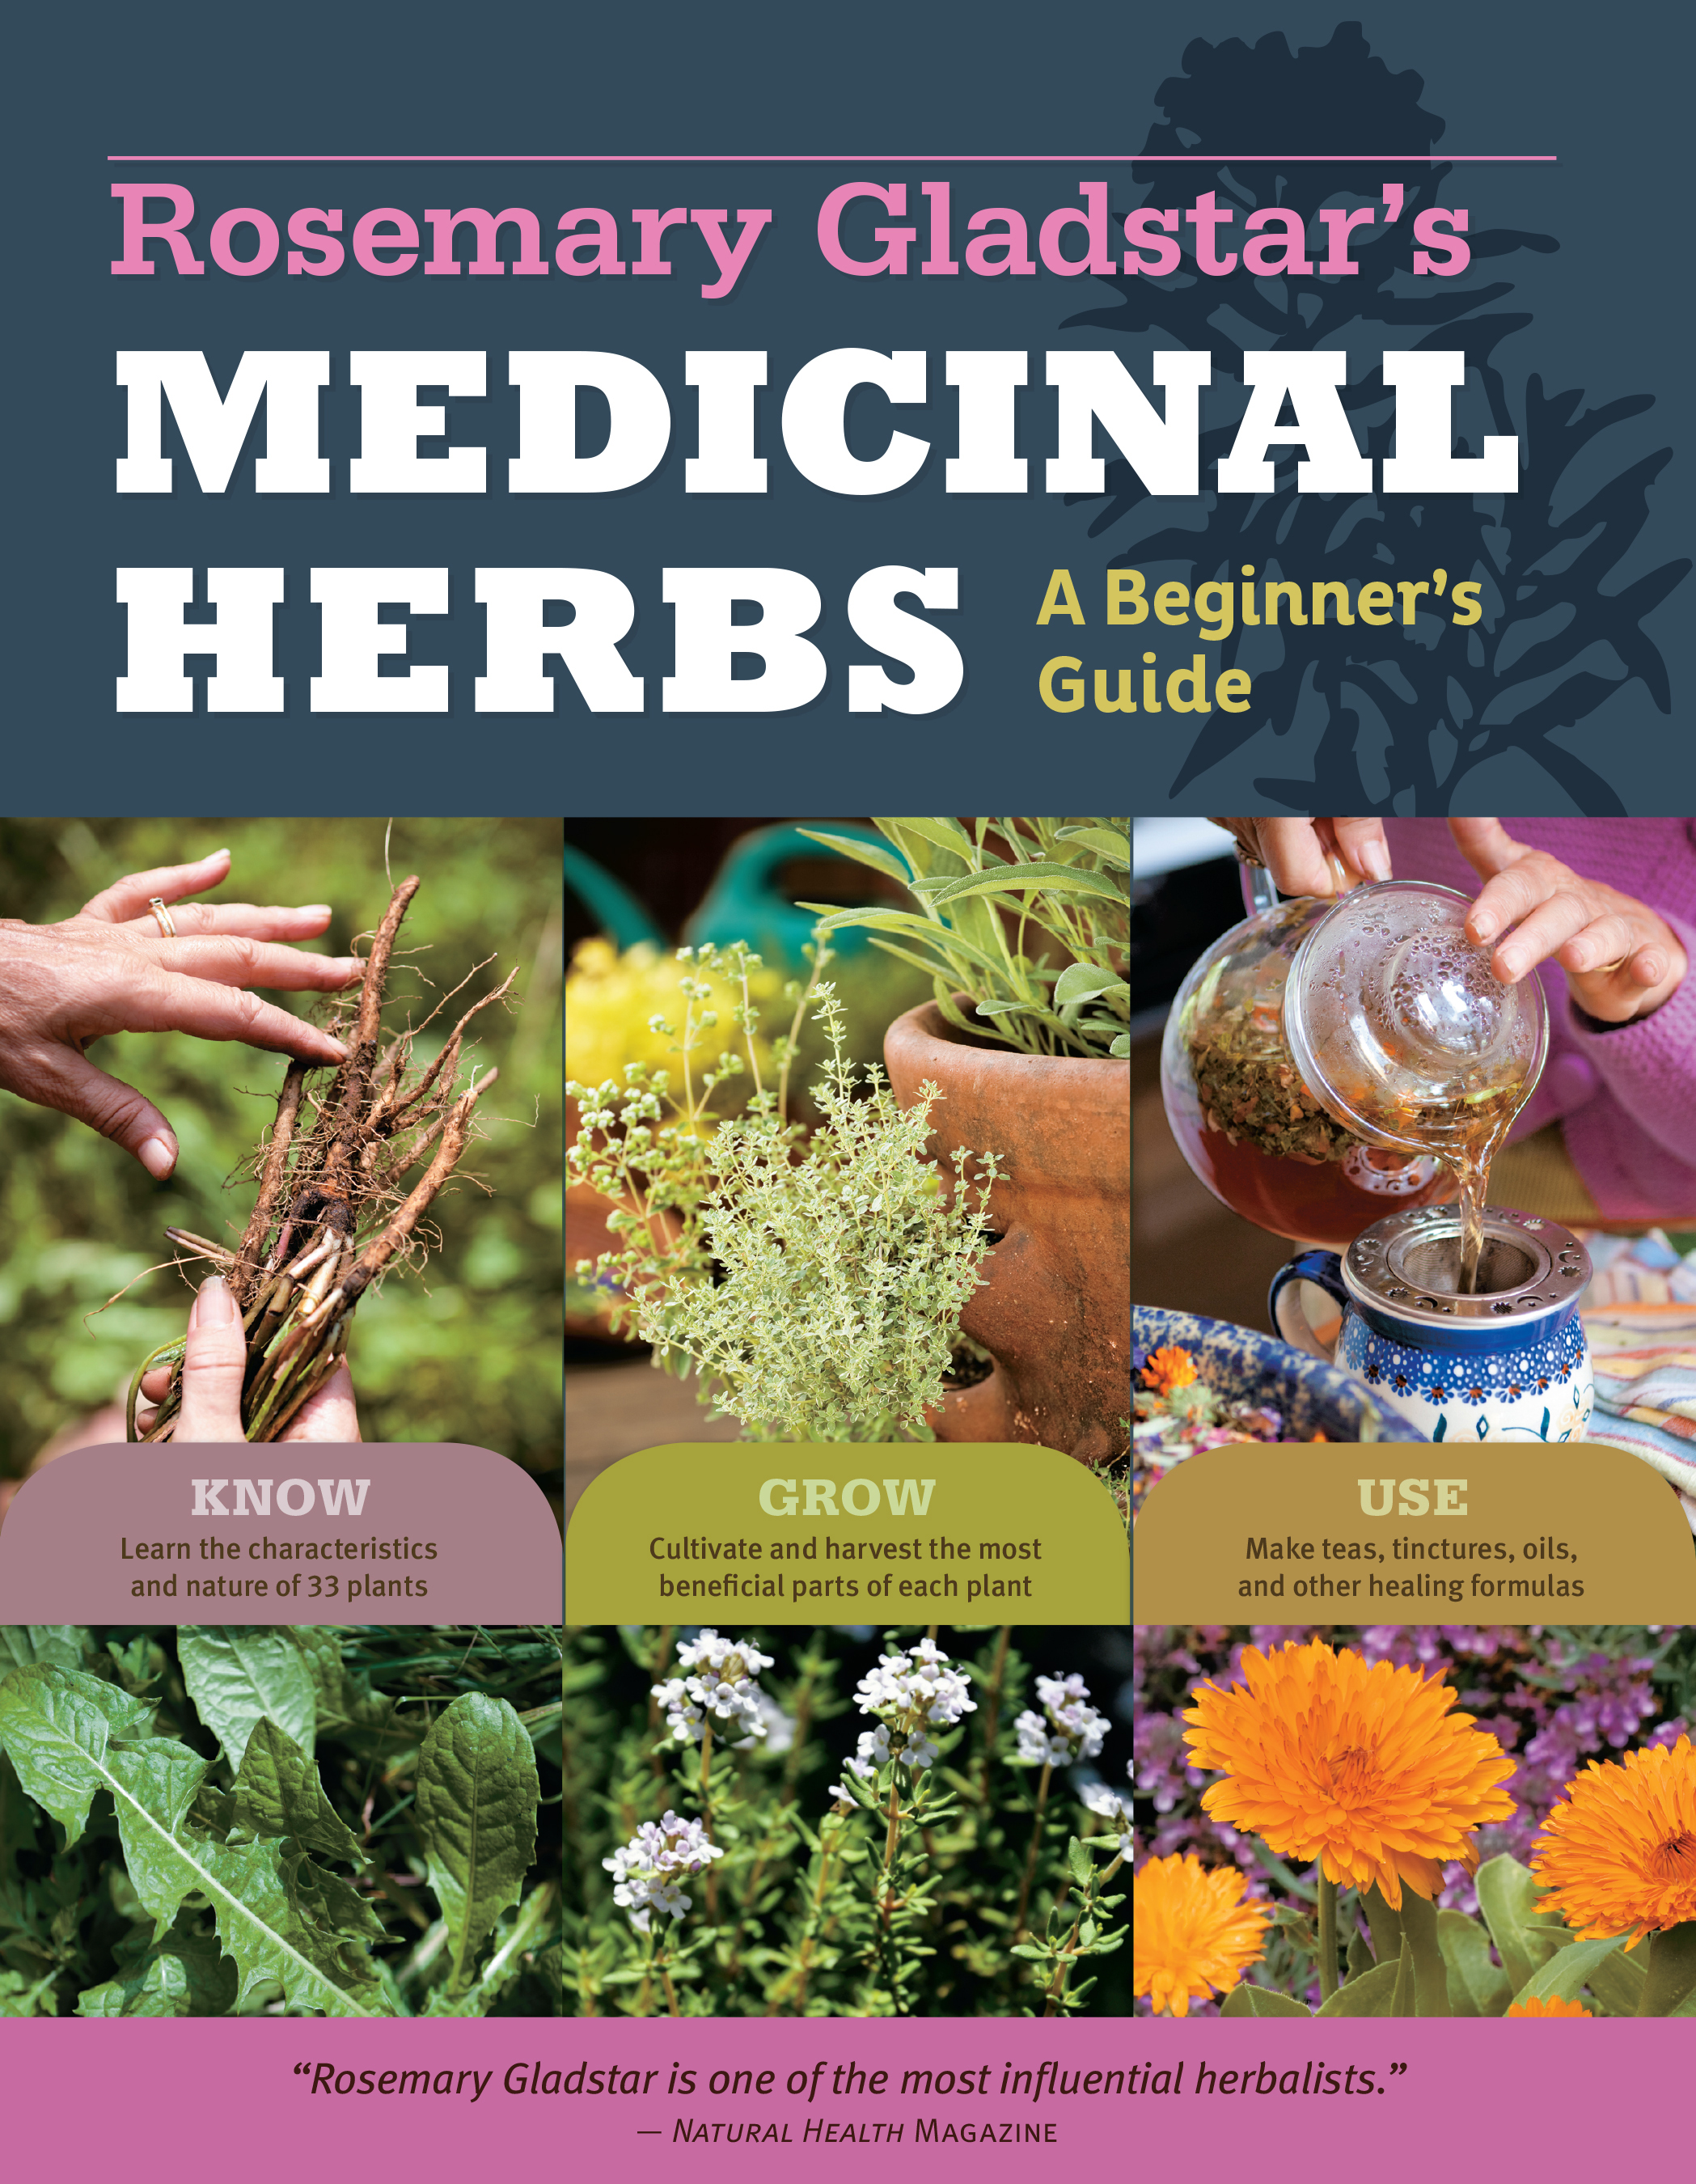 Rosemary Gladstar's Medicinal Herbs: A Beginner's Guide 33 Healing Herbs to Know, Grow, and Use - Rosemary Gladstar